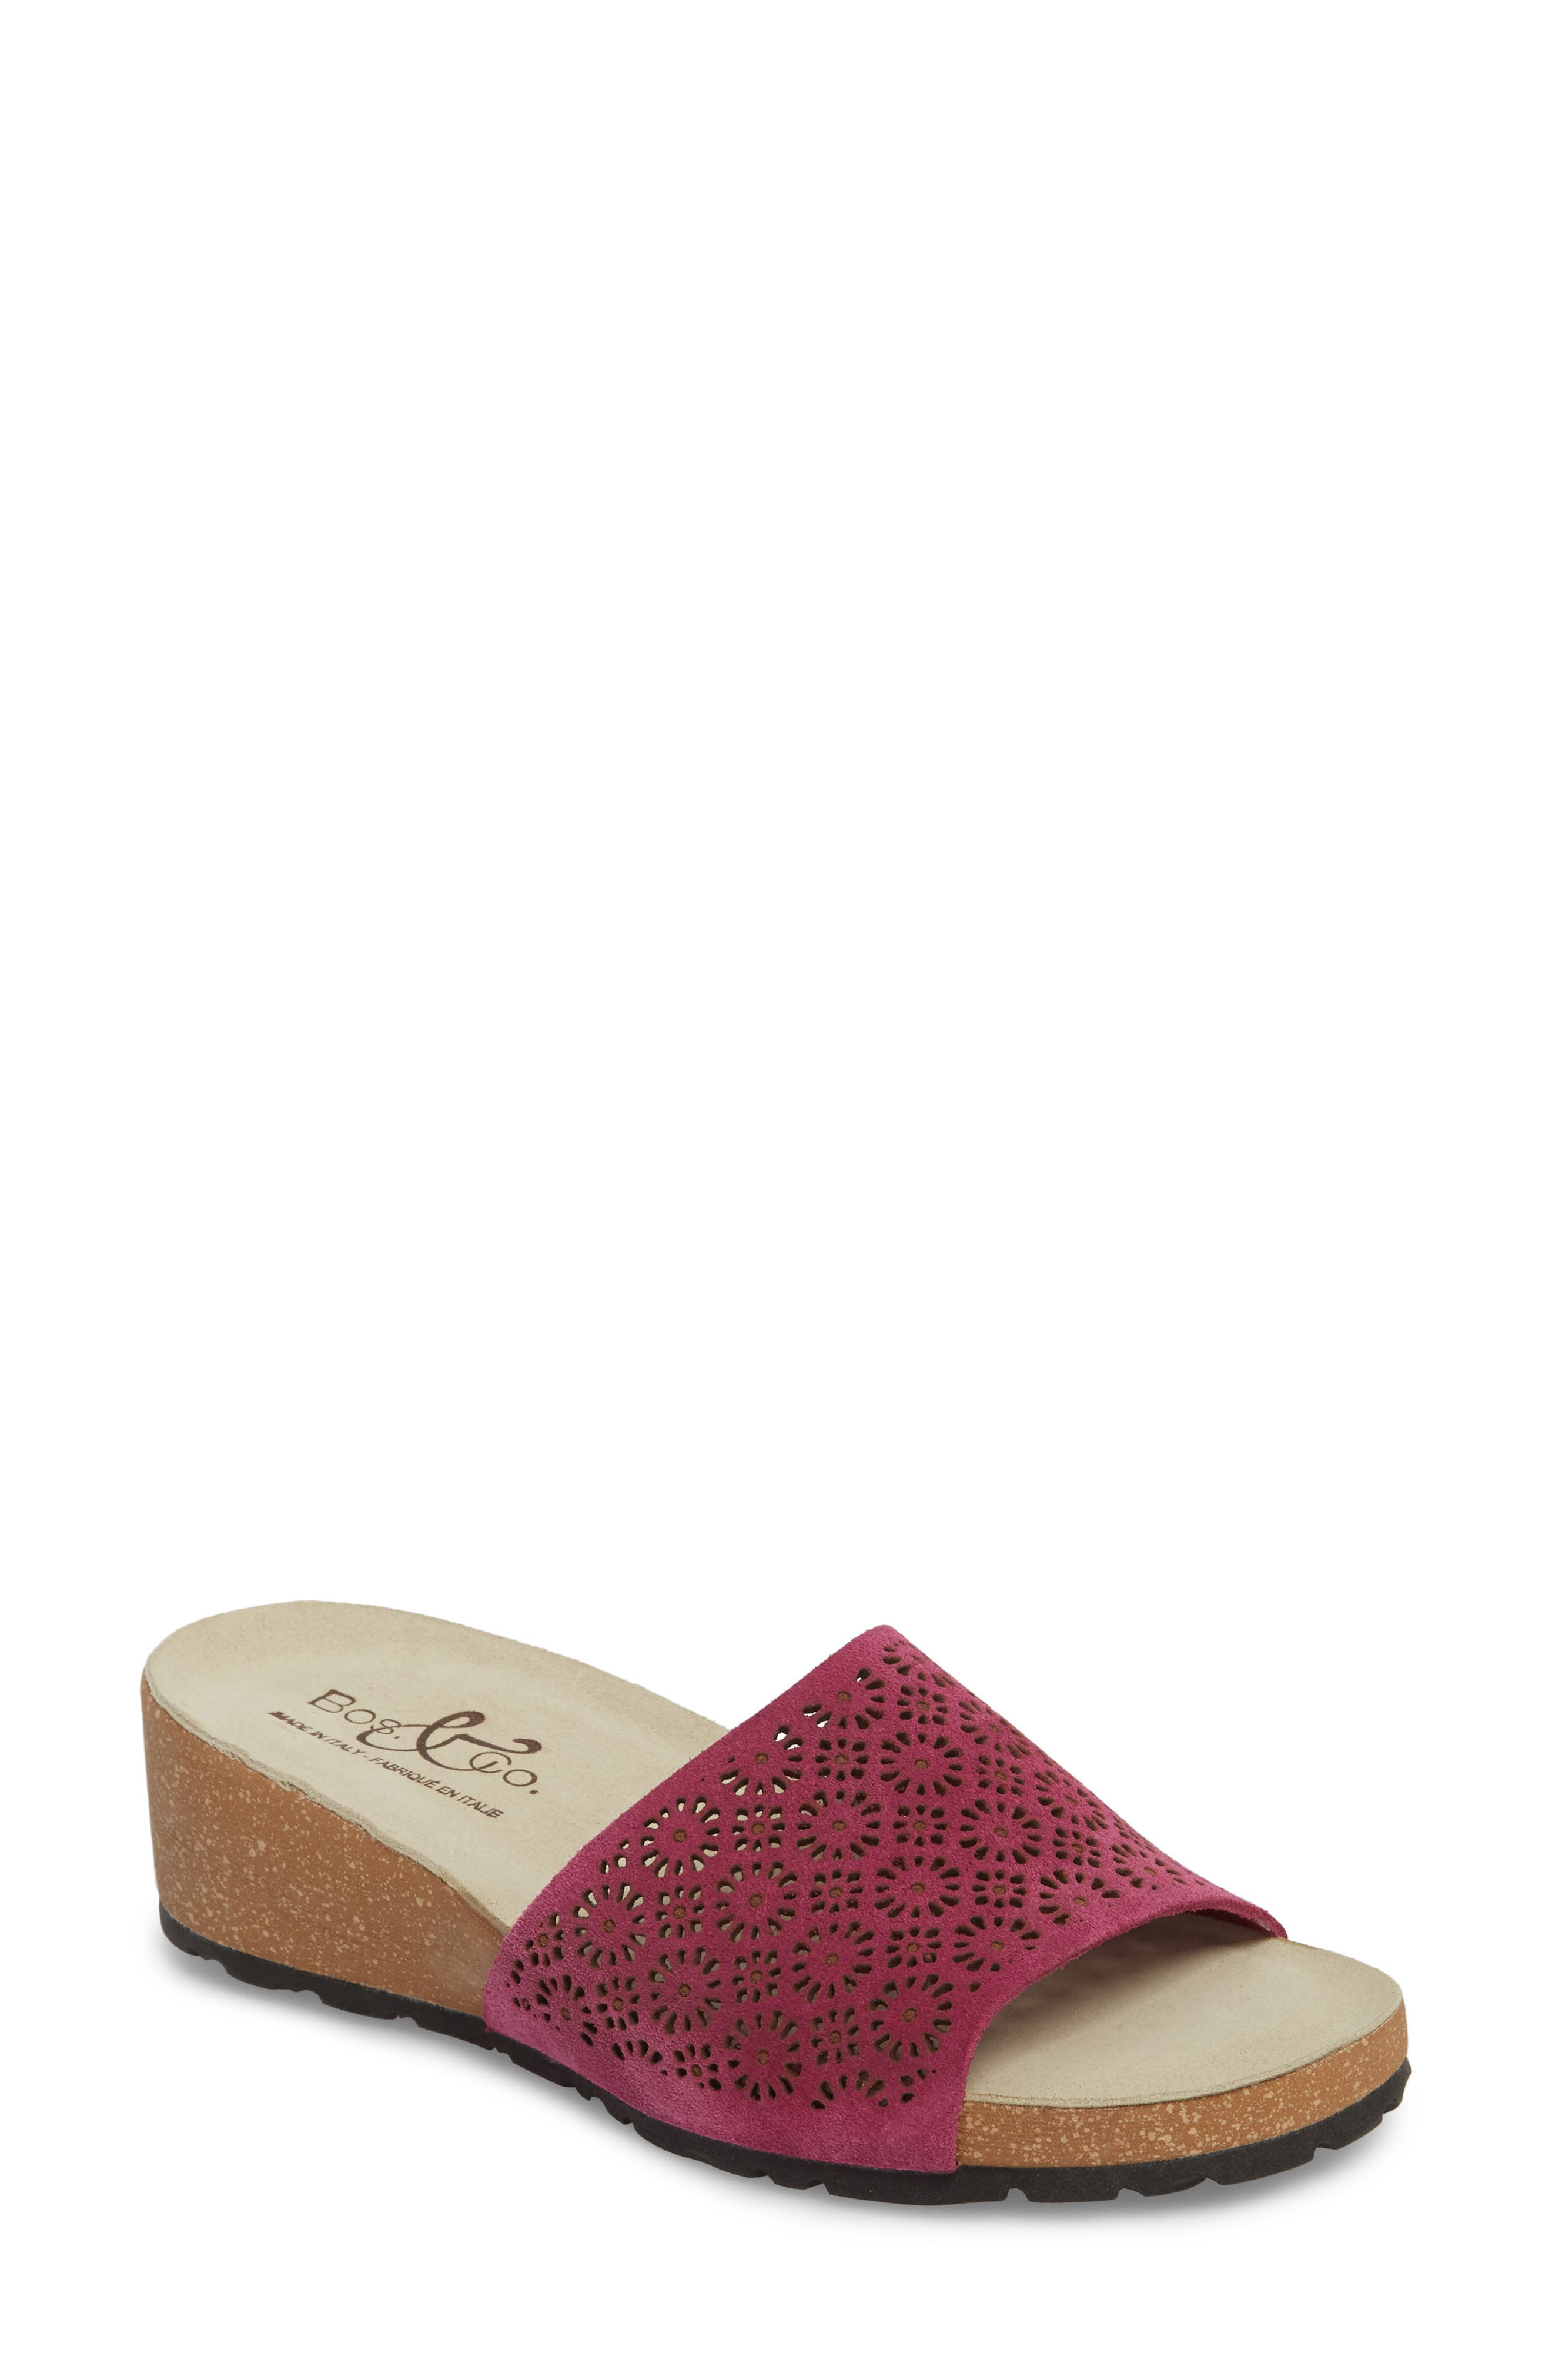 Bos. & Co. Loa Wedge Slide Sandal (Women)